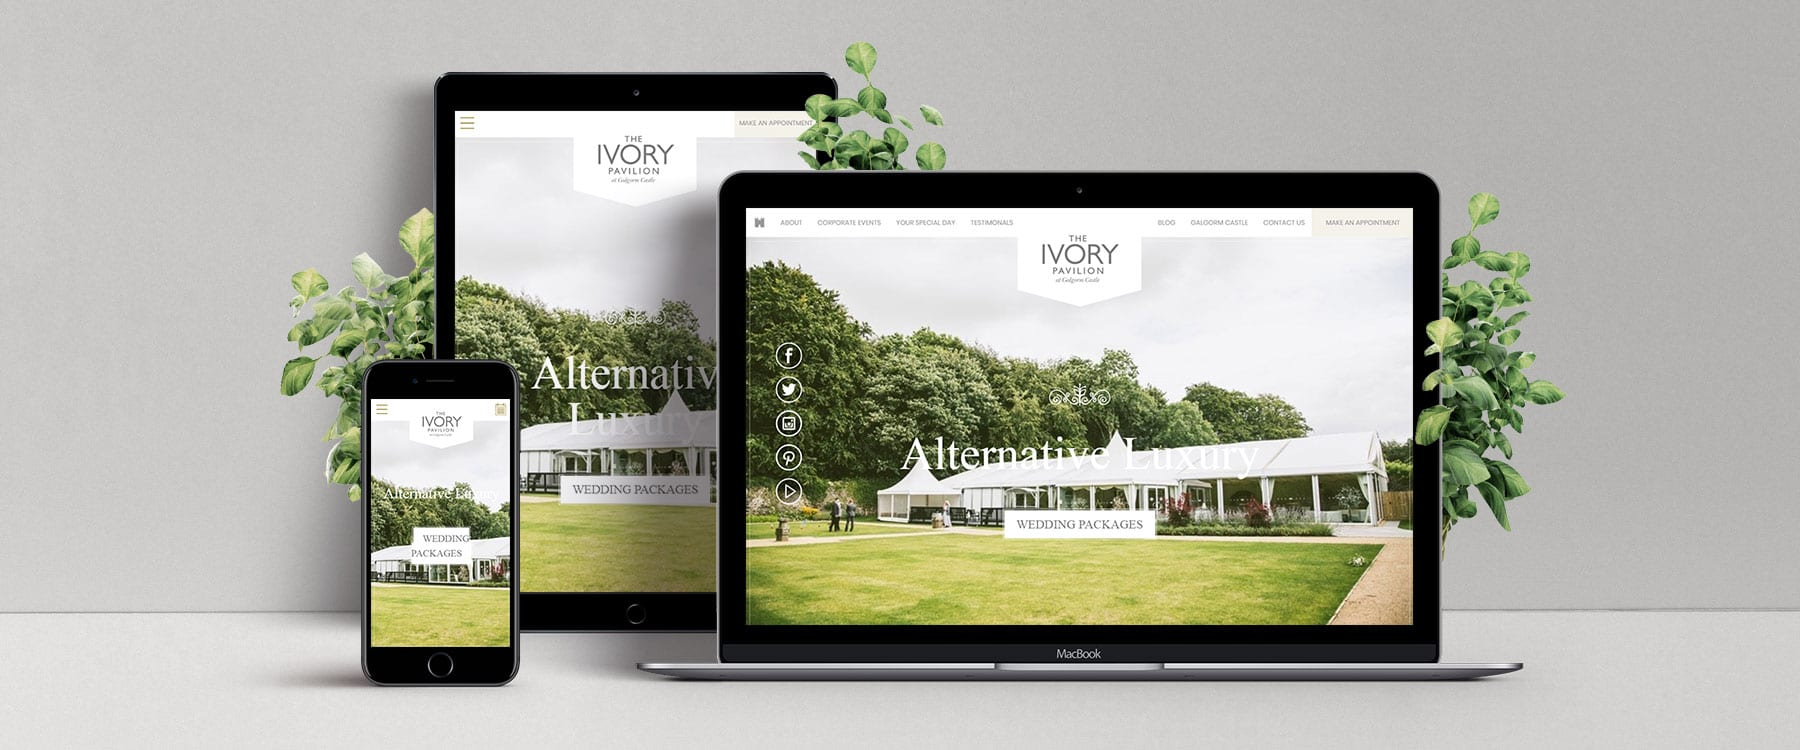 Beautiful & Inspiring Brochure Website for The Ivory Pavilion, Galgorm Image